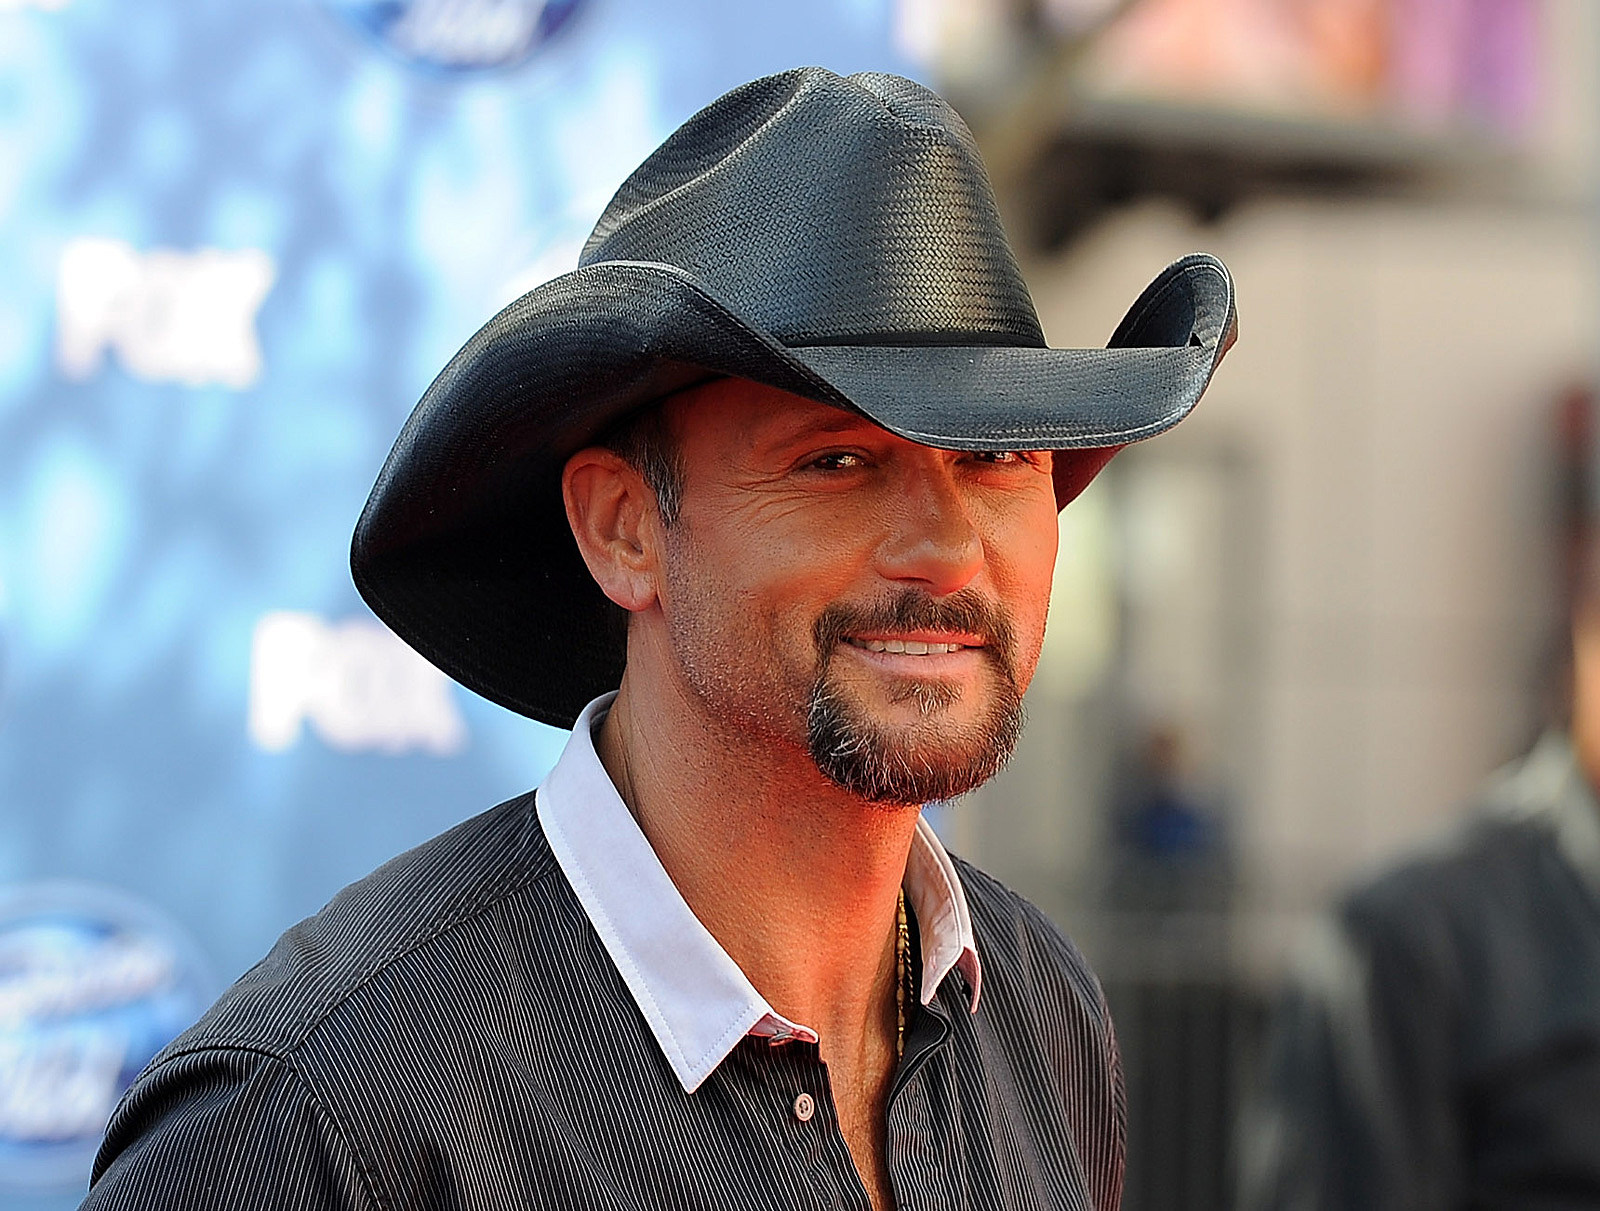 Sexy tim mcgraw photo